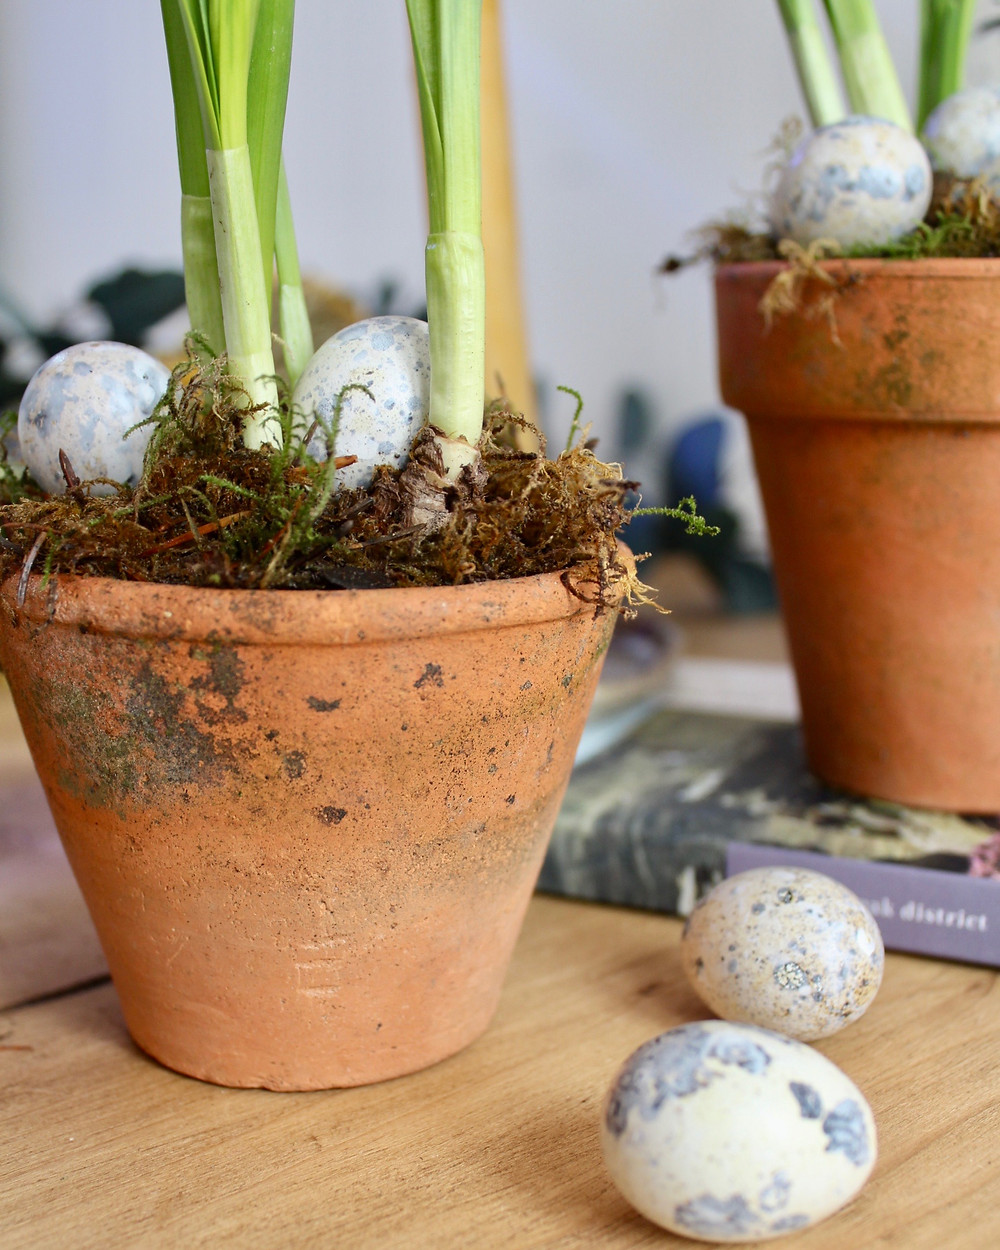 Vintage terracotta pots with spring bulbs and speckled eggs